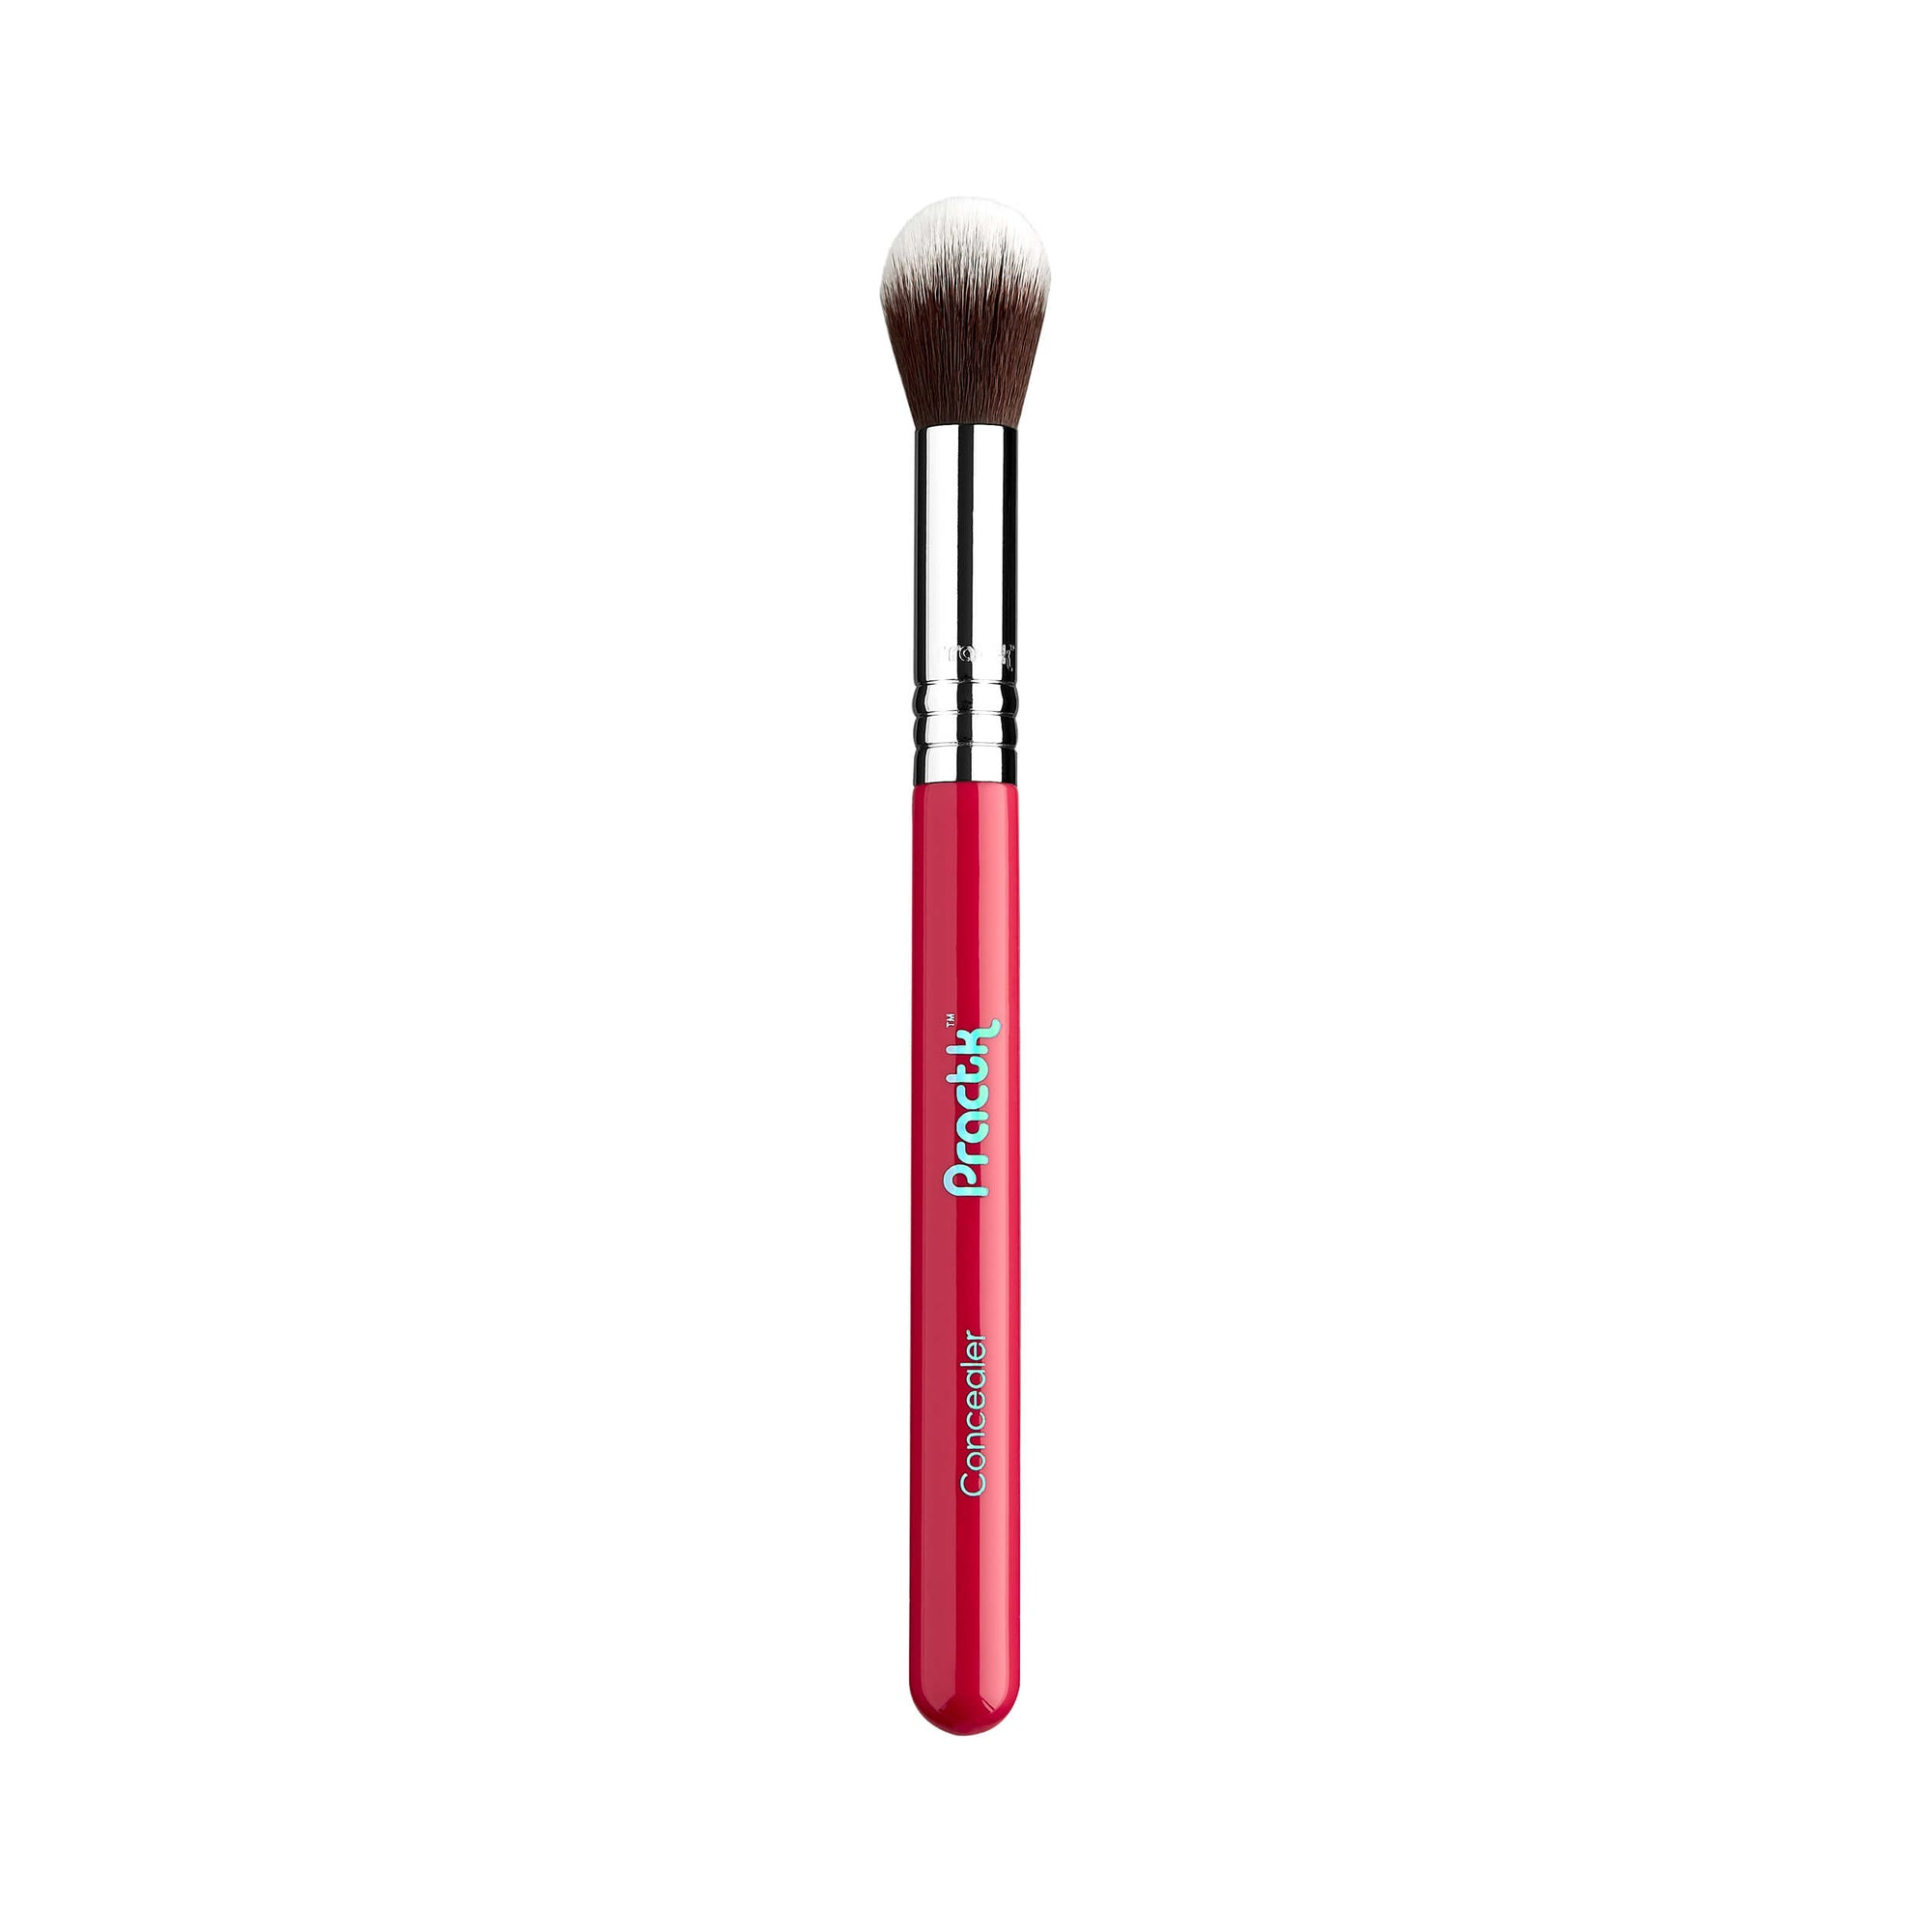 Practk (by Sigma Beauty) Concealer Brush